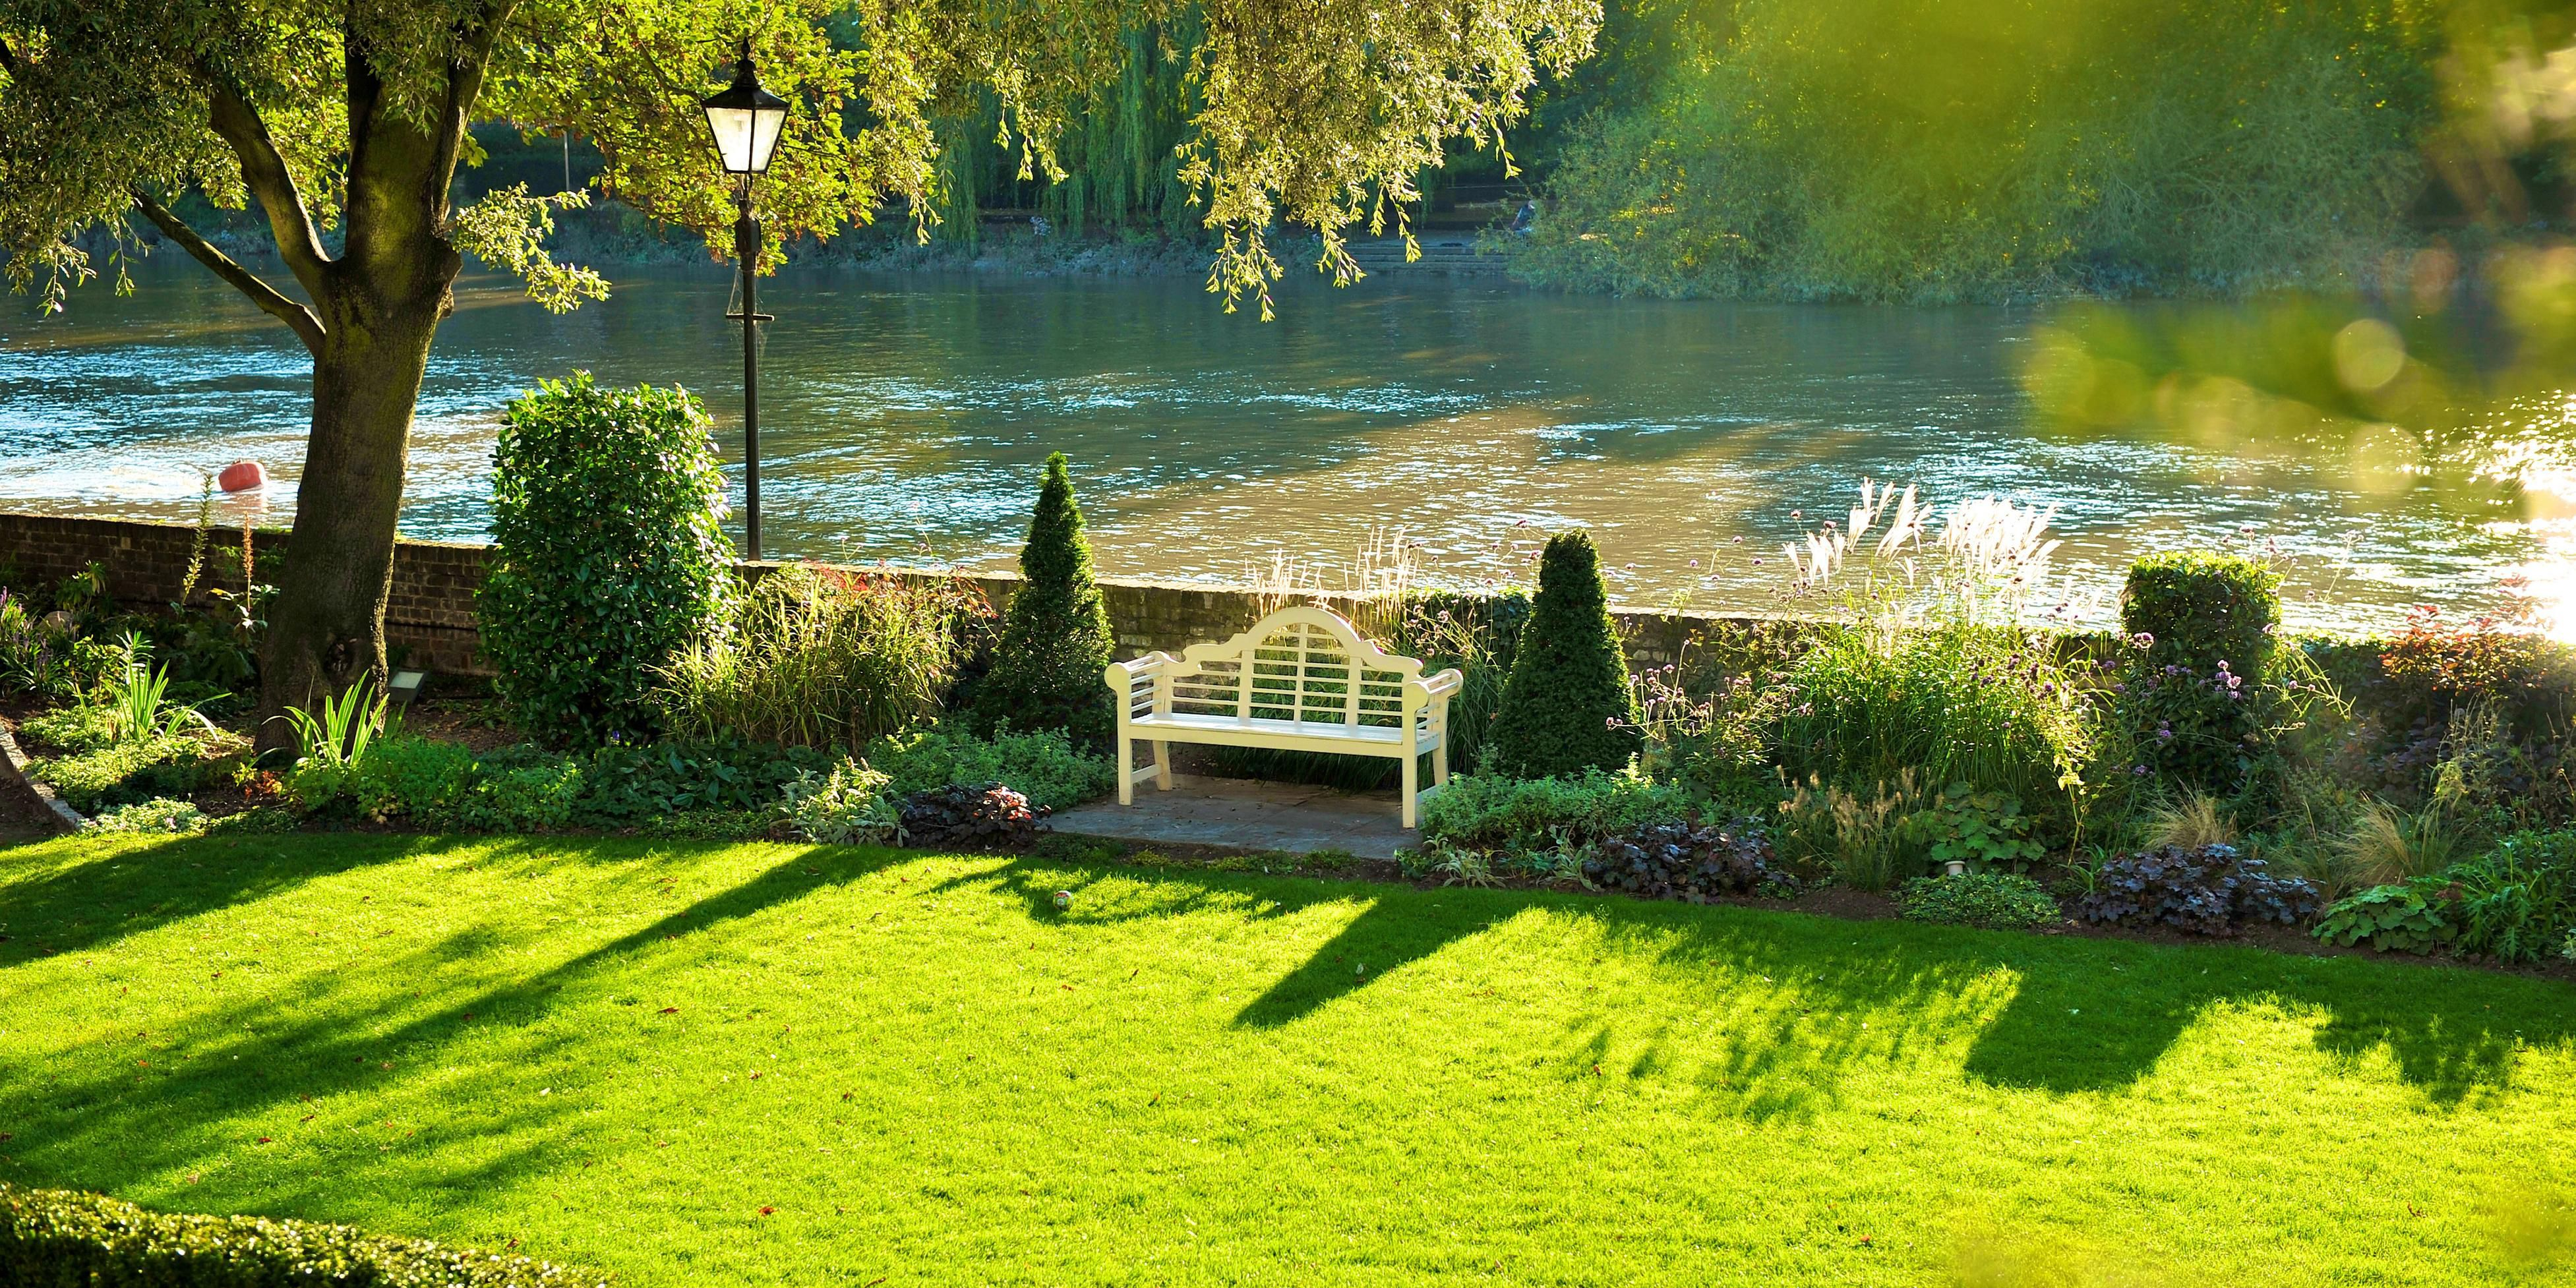 Gardens and view of the River Thames